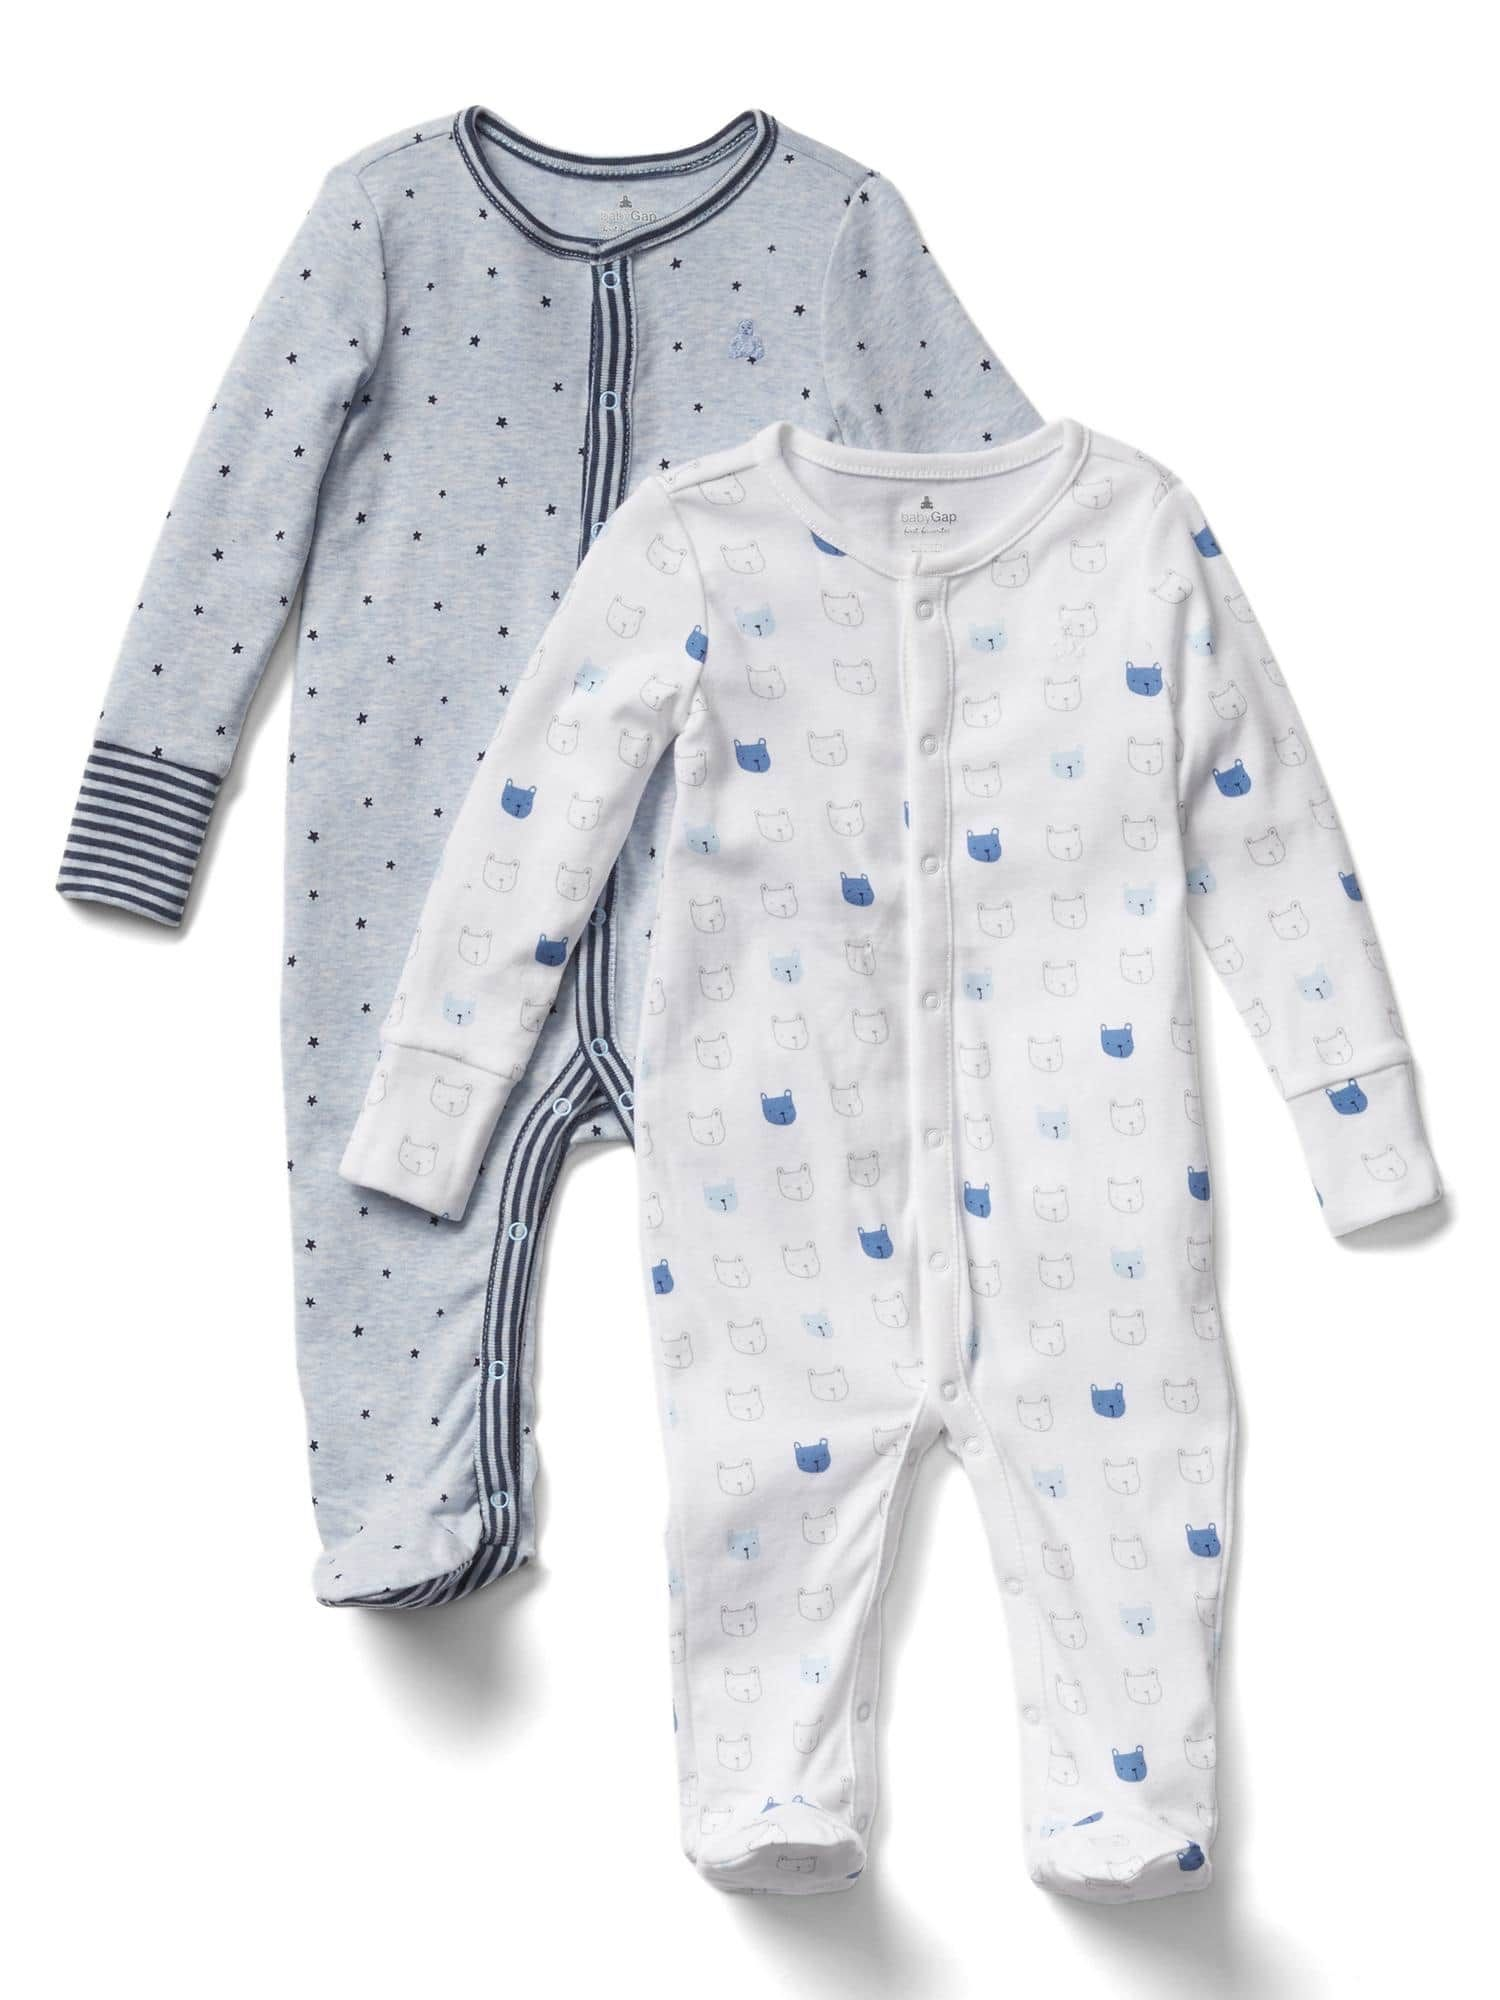 New Baby Gap Baby Boy  Infant Print Footed One Piece 2 Pack Size 3-6 Months